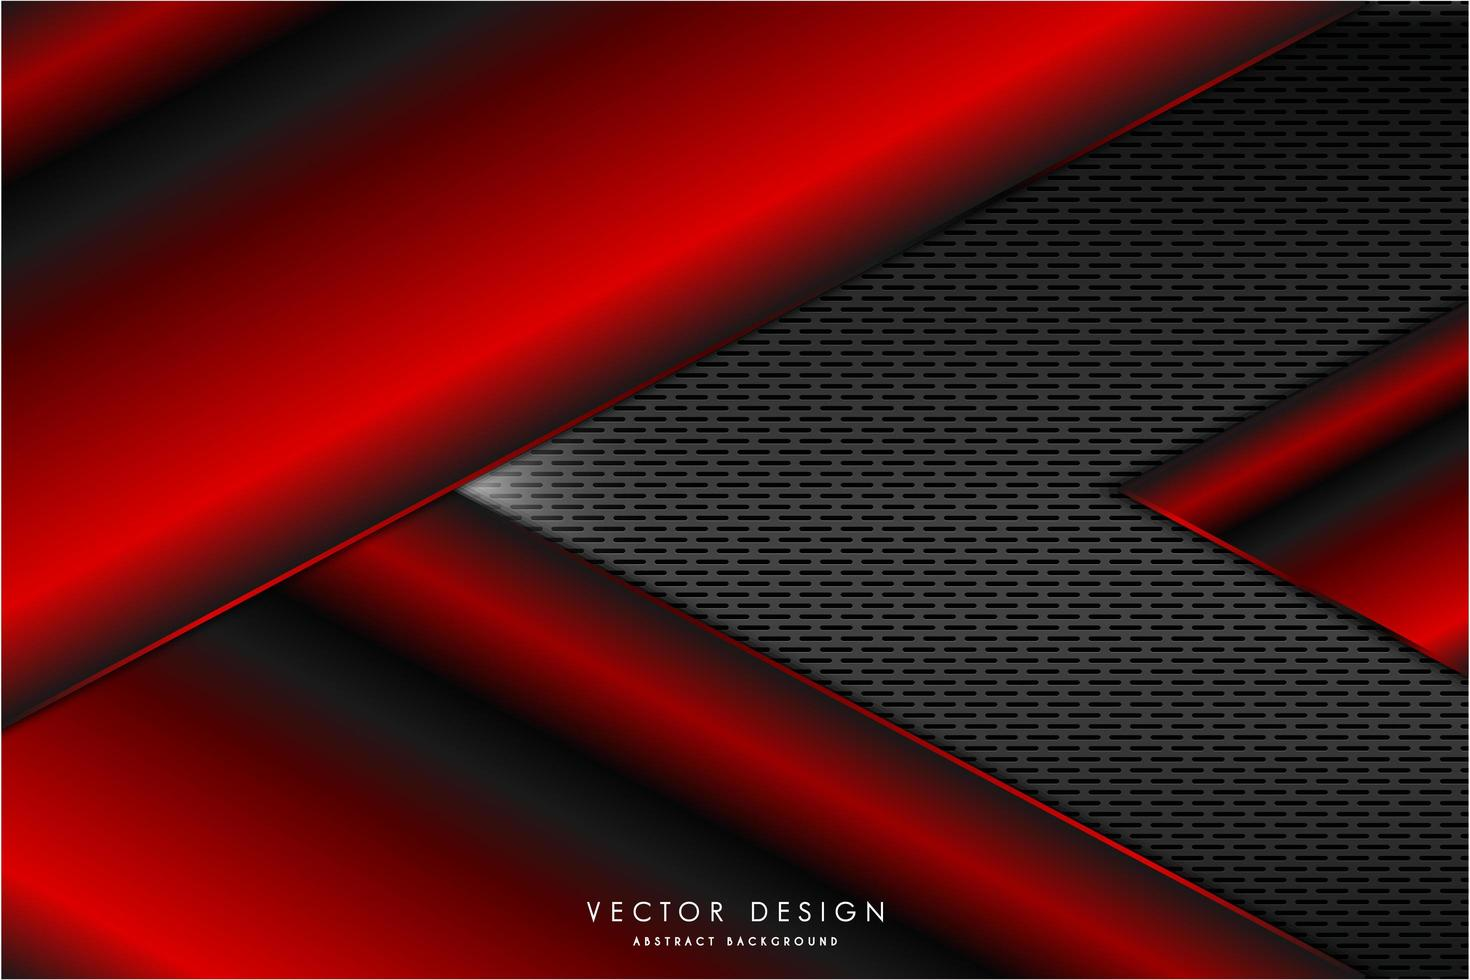 Metallic red arrow shaped plates with gray grate texture vector